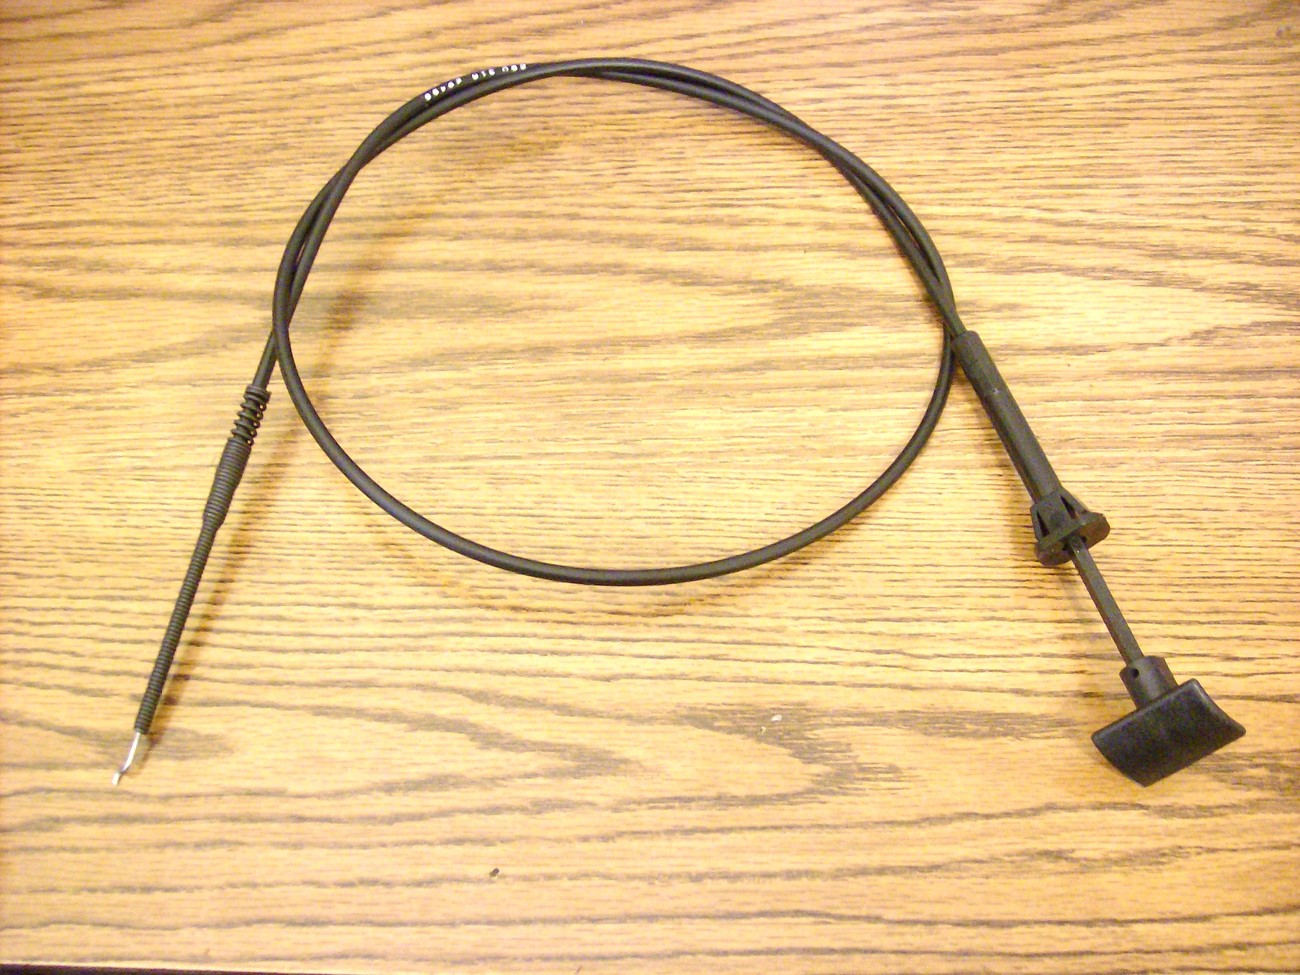 MTD lawn mower choke cable 746-0613, 746-0613A, 946-0613A